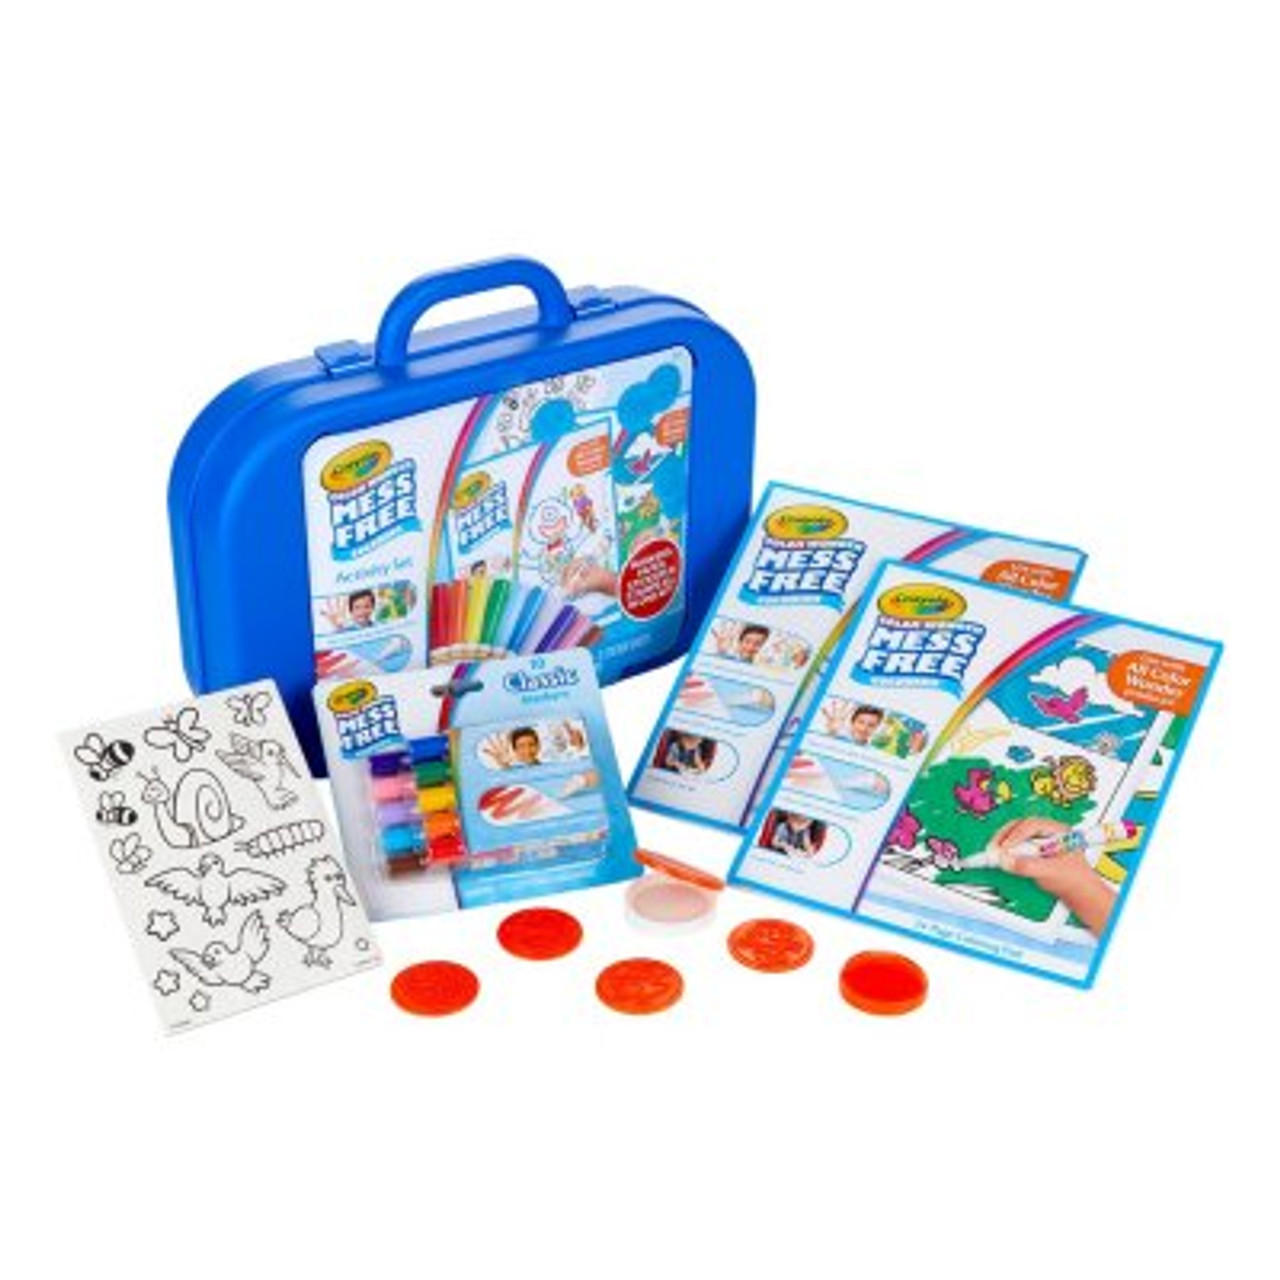 Crayola Color Wonder Mess Free Activity Set with Storage Case  - *Ships from Miami*